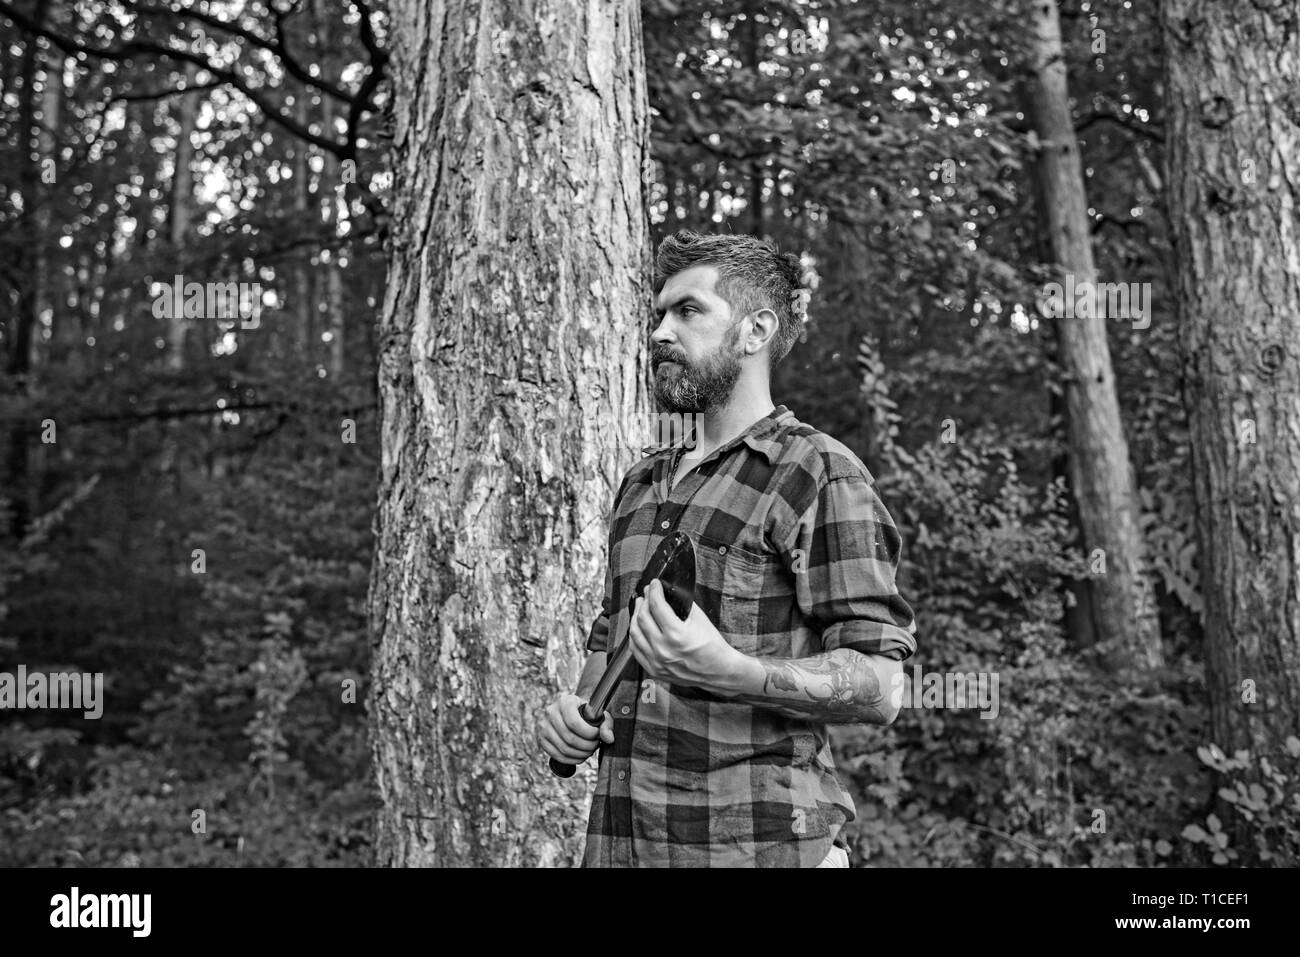 Bearded guy with spade wandering in woods. Side view brutal lumberjack waiting on path. Nature, camping, leisure concept - Stock Image